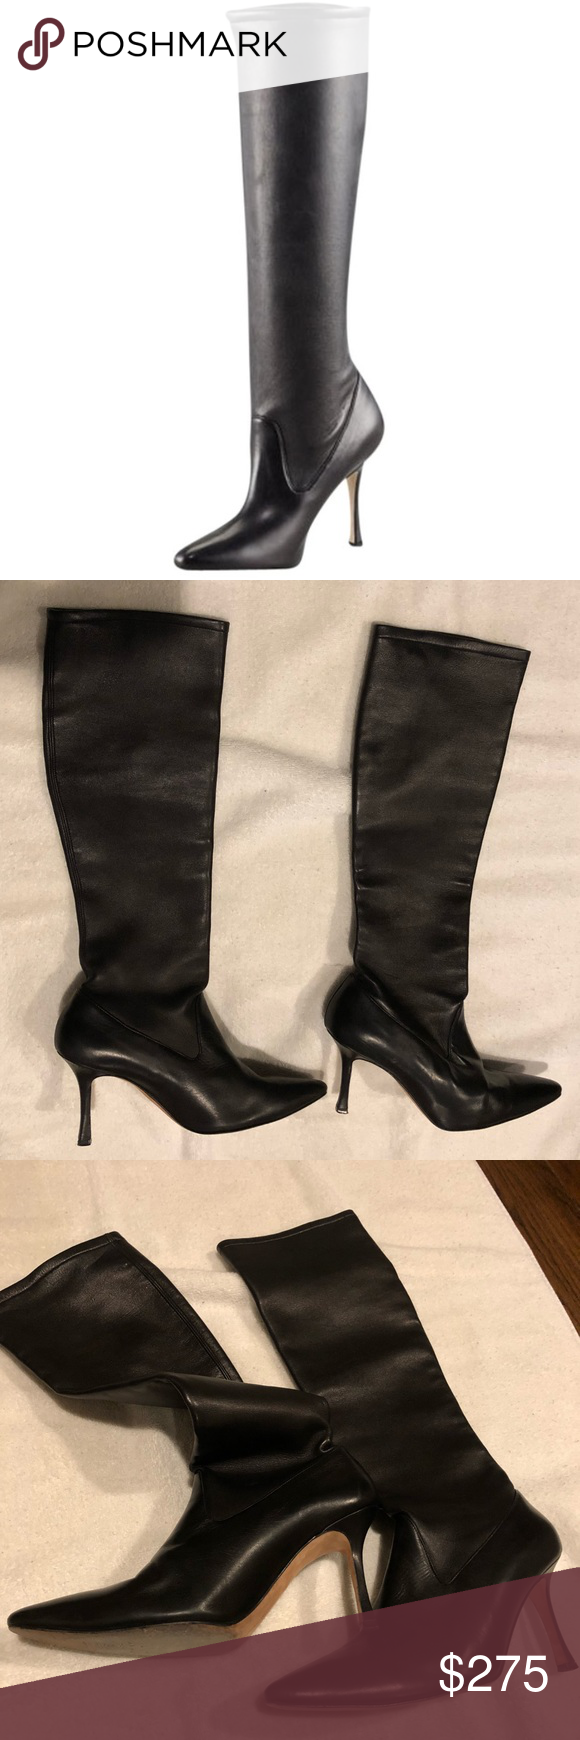 Manolo Blahnik Pascalare Stretch Leather Boot 37.5 Gorgeous Manolo Blahnik tall stretch leather boot...